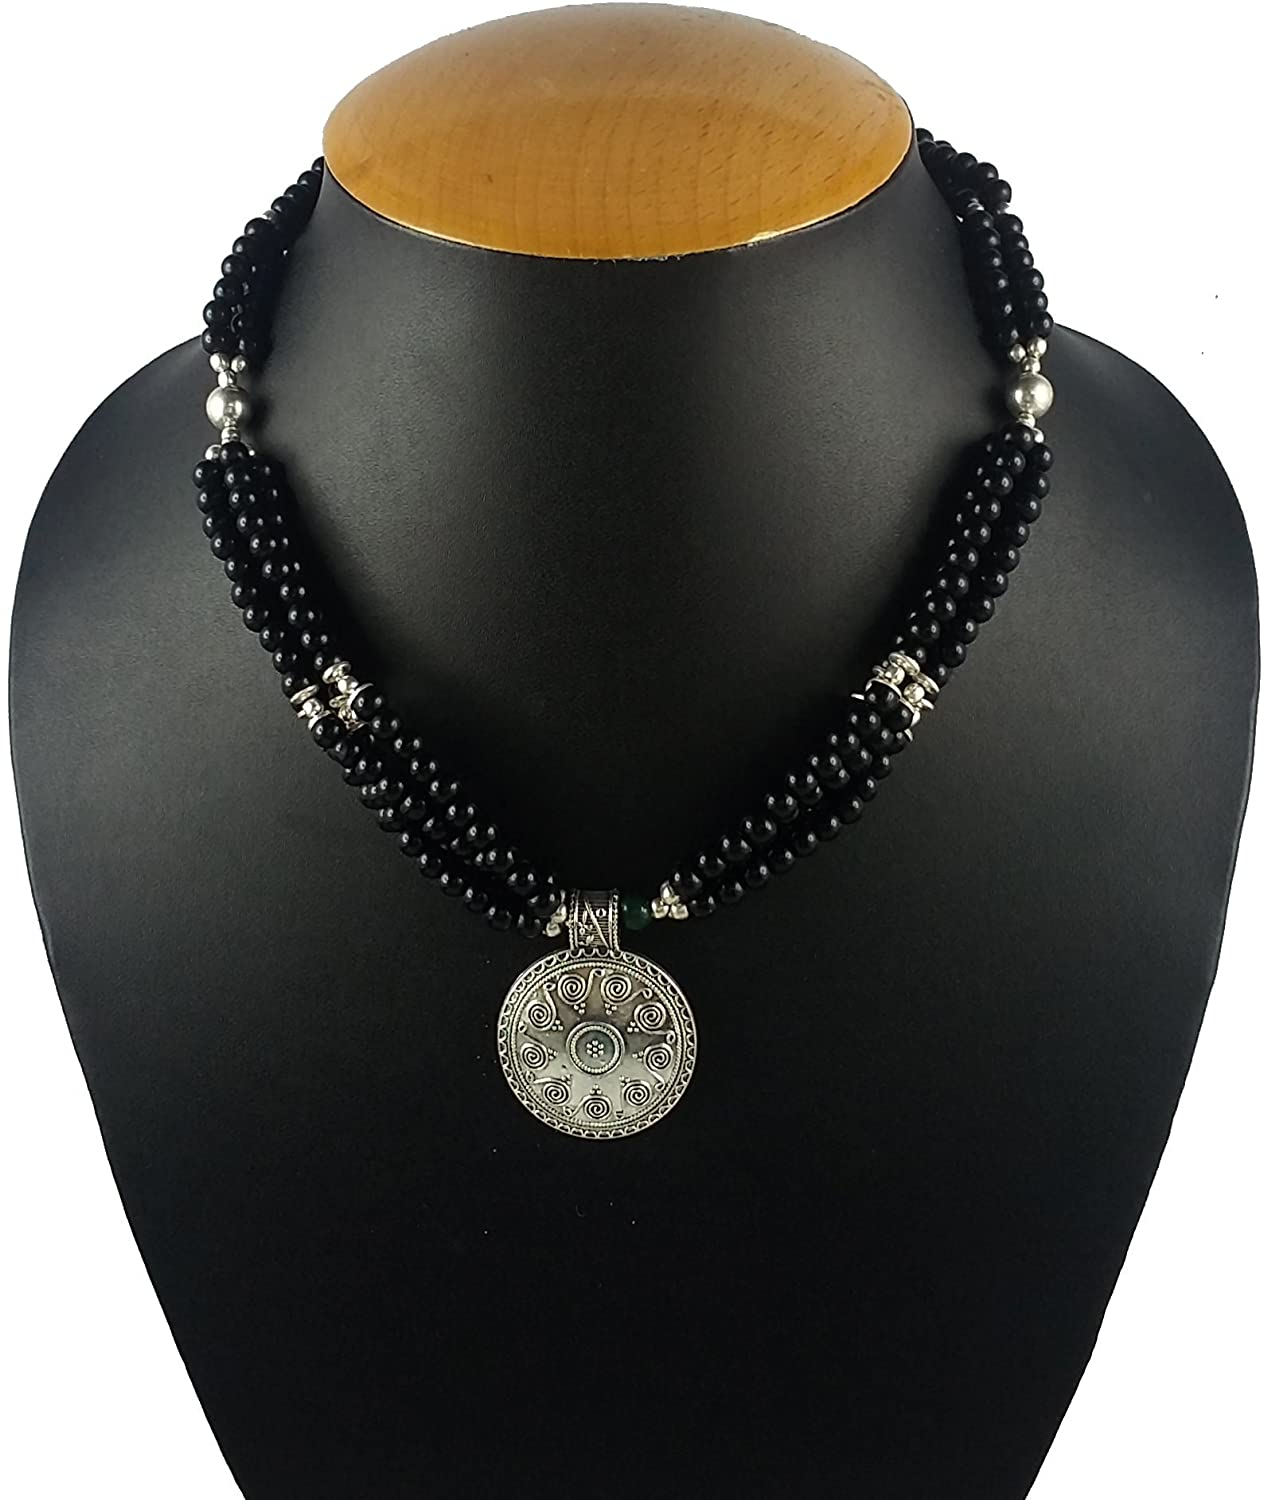 Aradhya Womens Designer German Silver And Black Colour Stone Beads Necklace